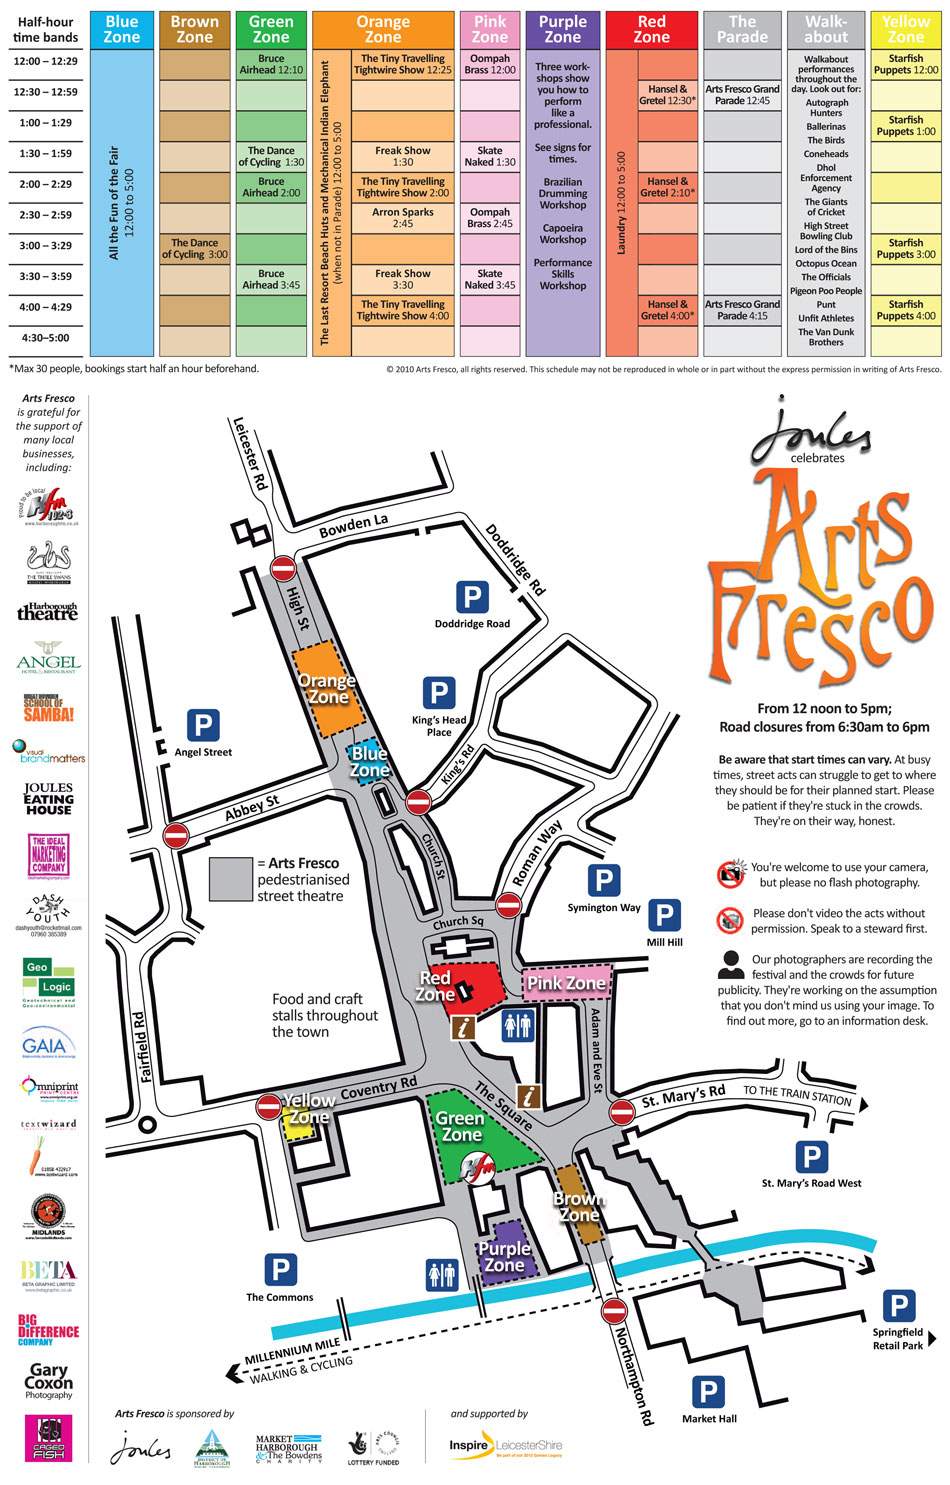 Town plan and event schedule from the Arts Fresco programme